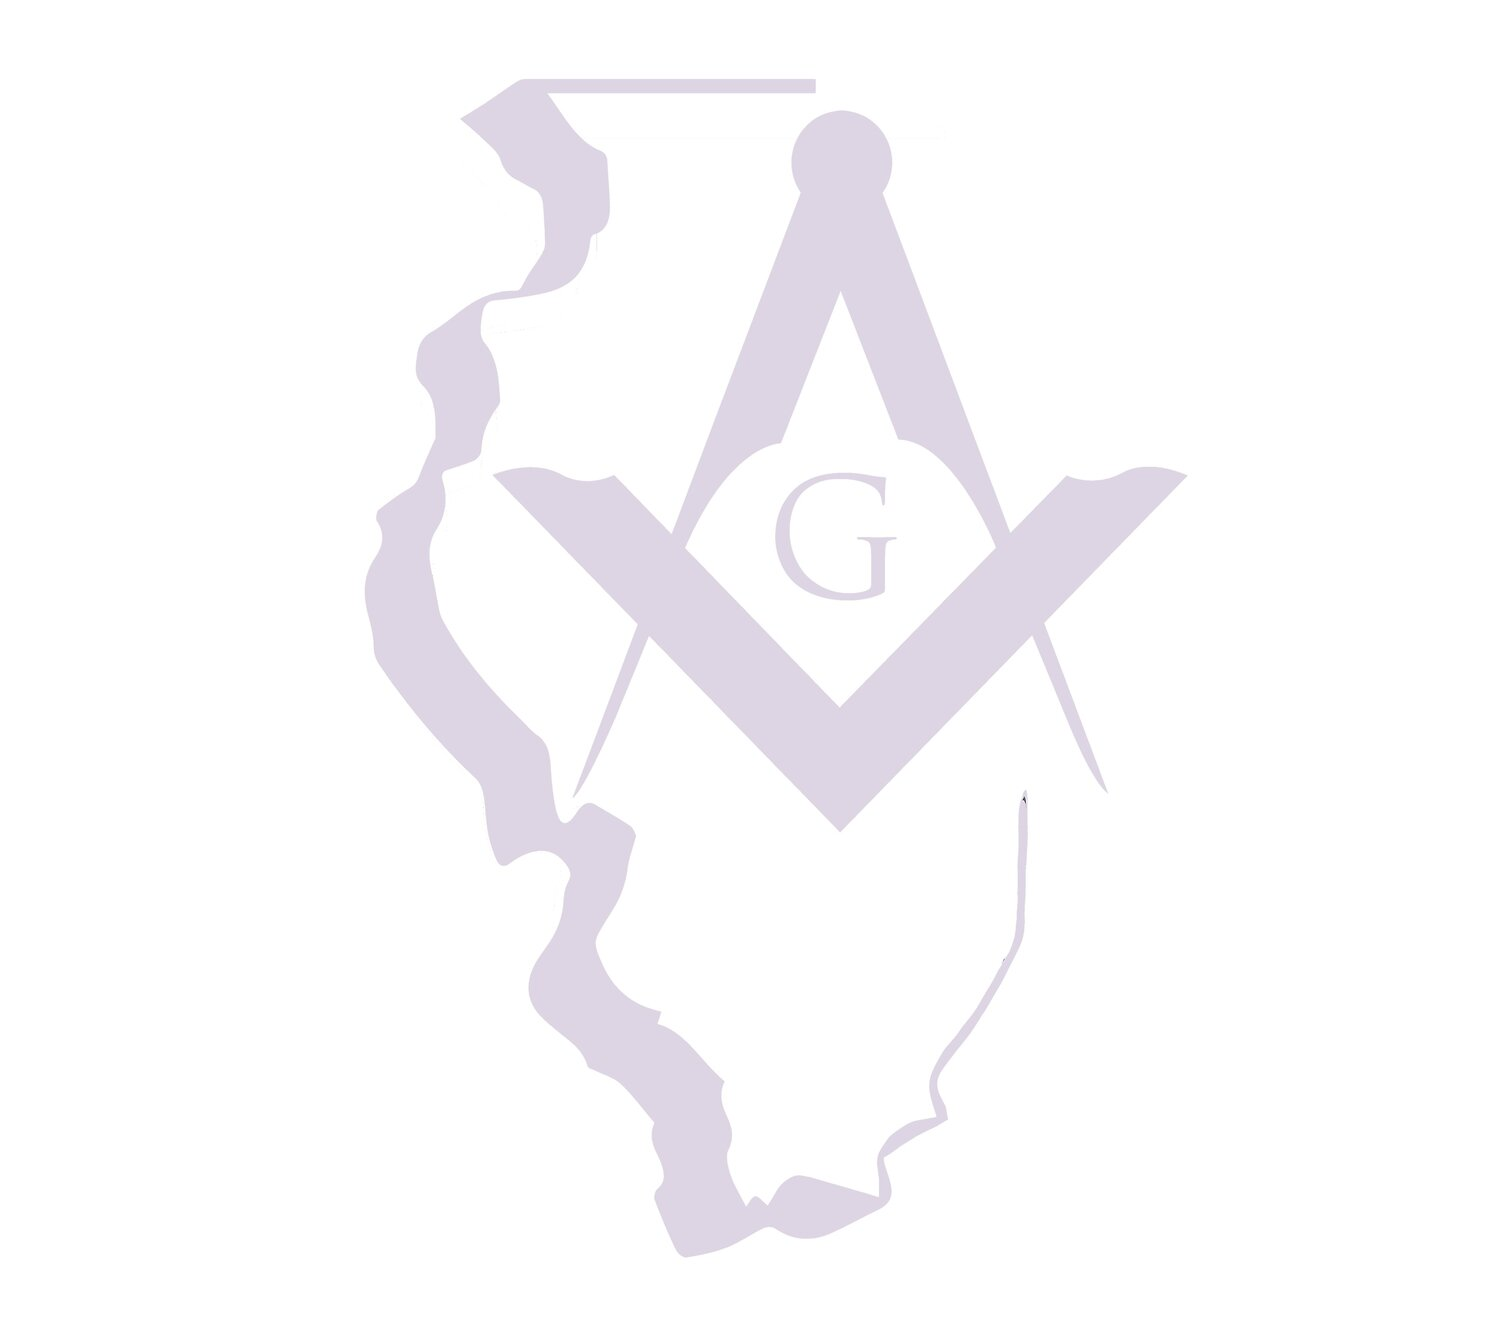 ILLINOIS FREEMASONRY